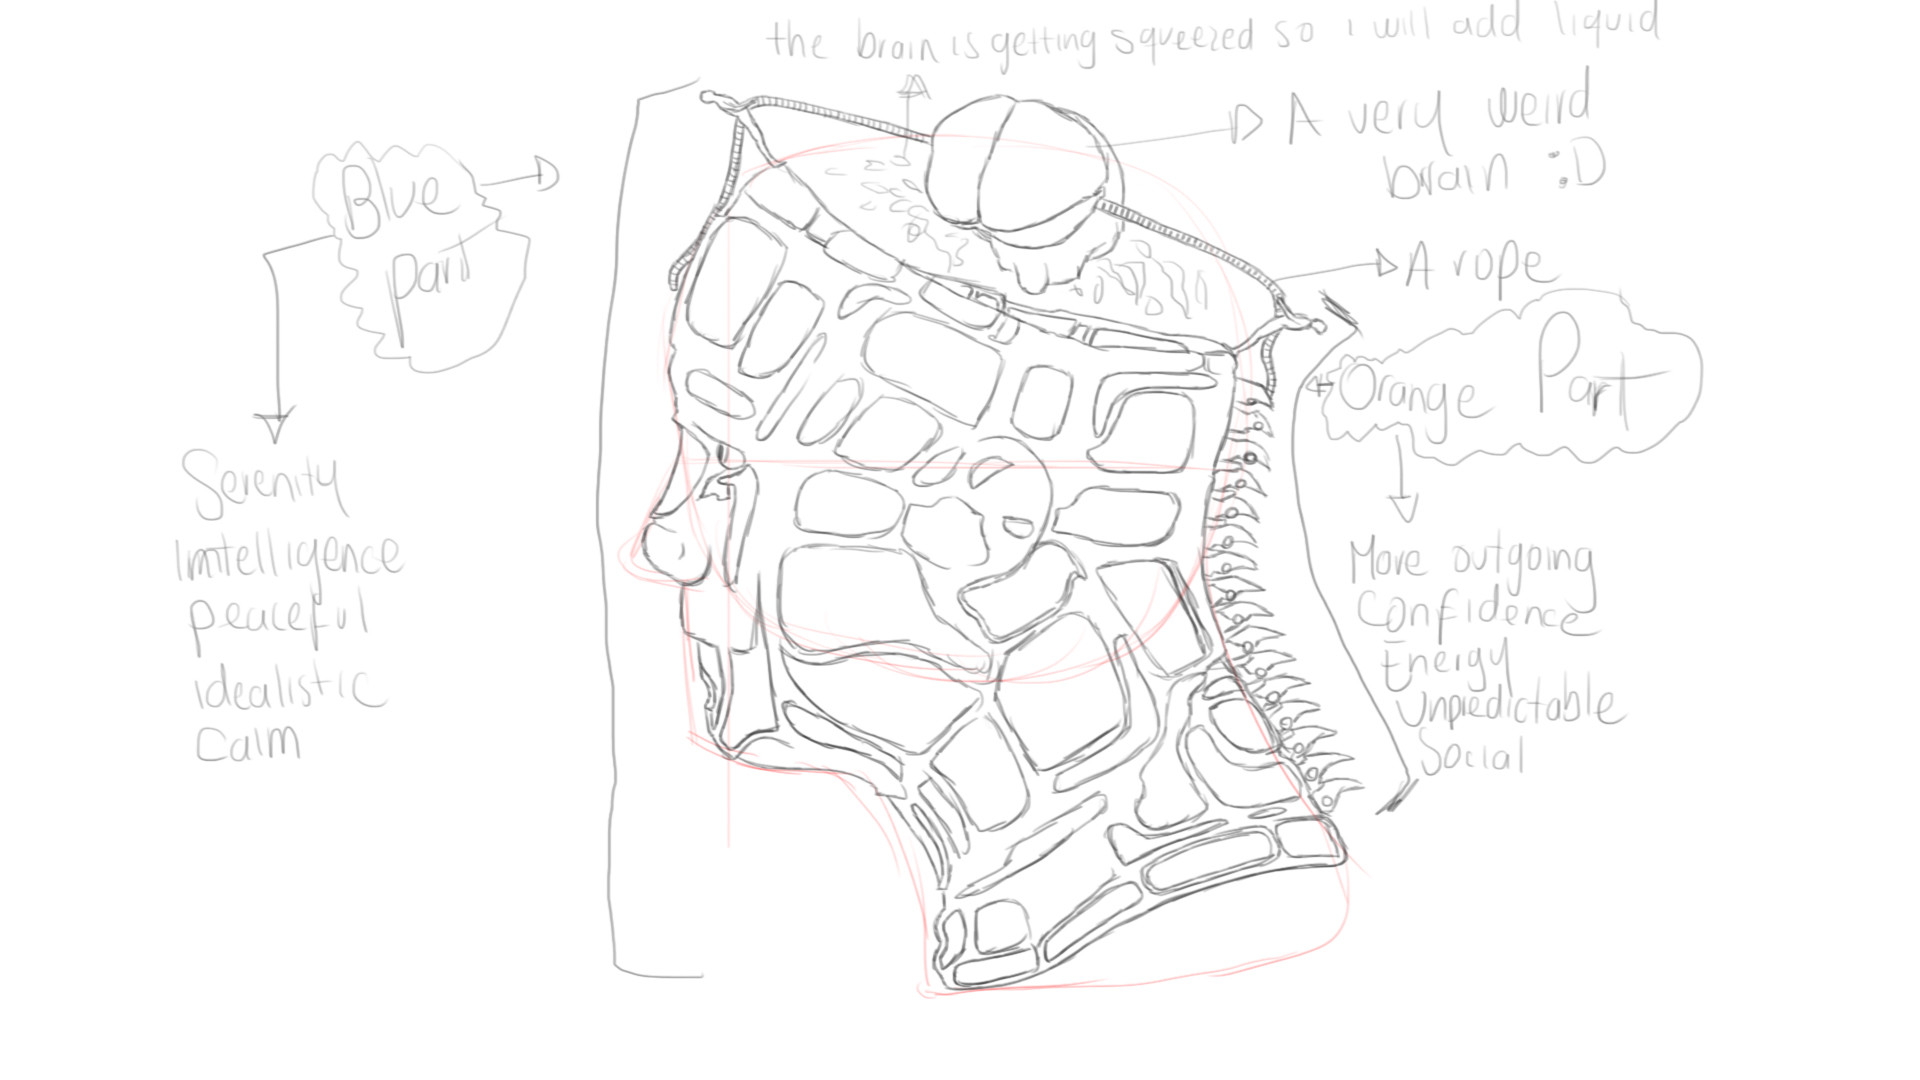 Brainstorming, I generally do this process before begin to work in the actual piece